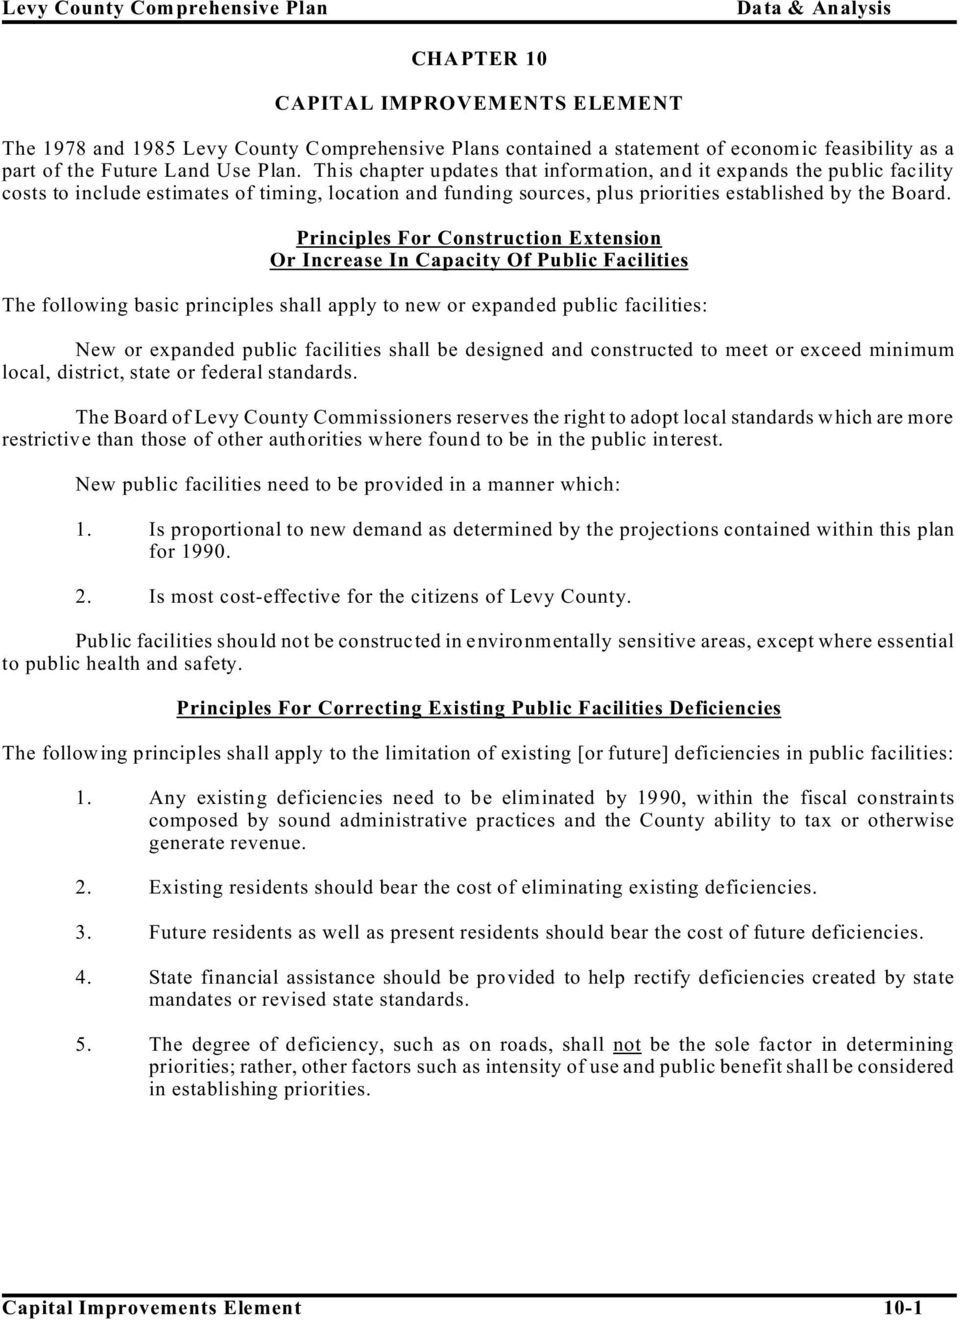 Principles For Construction Extension Or Increase In Capacity Of Public Facilities The following basic principles shall apply to new or expanded public facilities: New or expanded public facilities